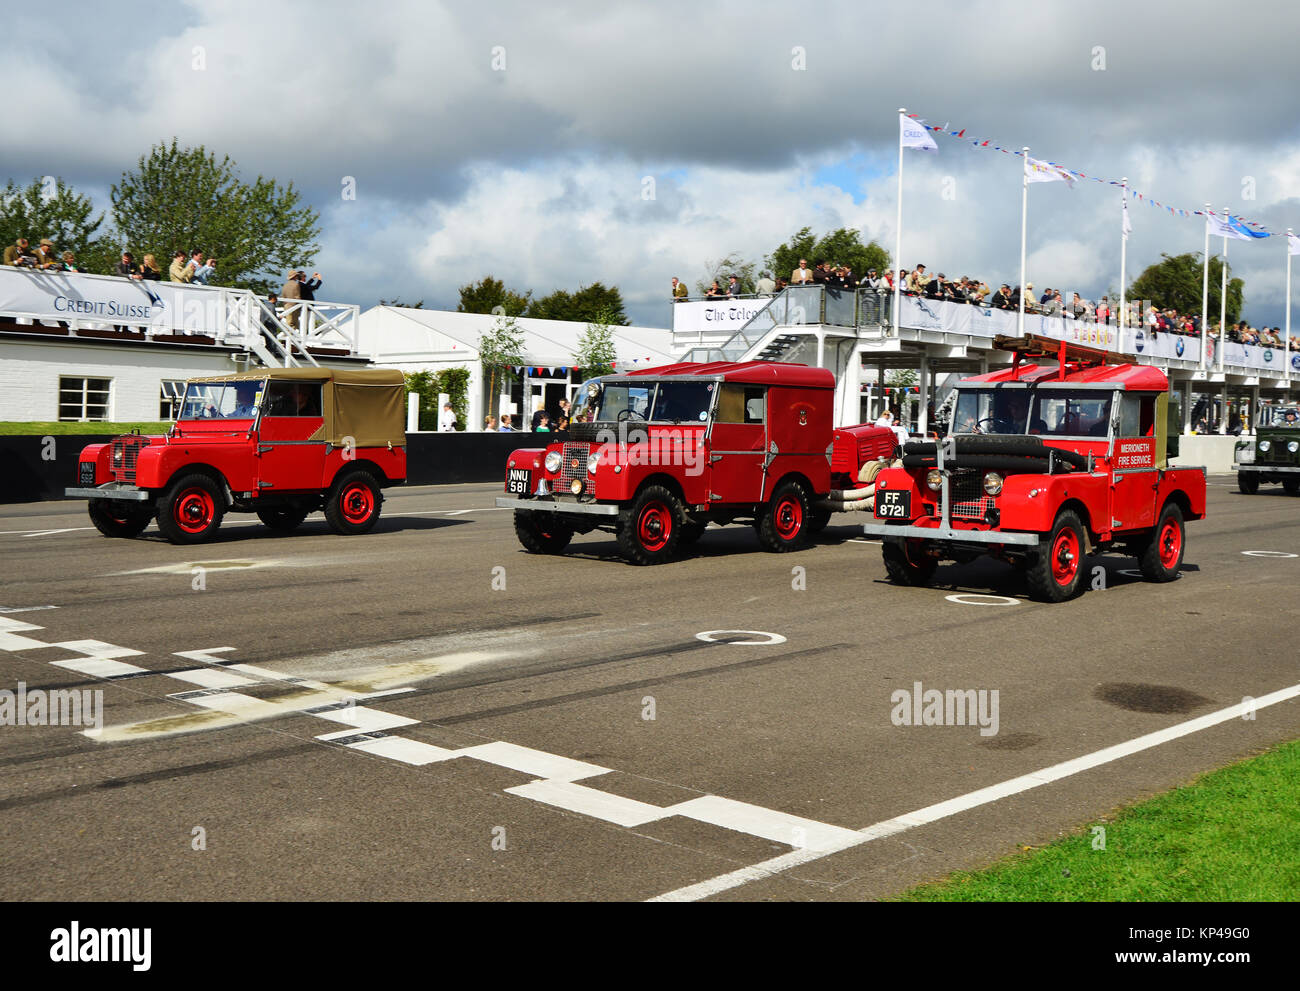 Land Rover Fire Engine Stock Photos Amp Land Rover Fire